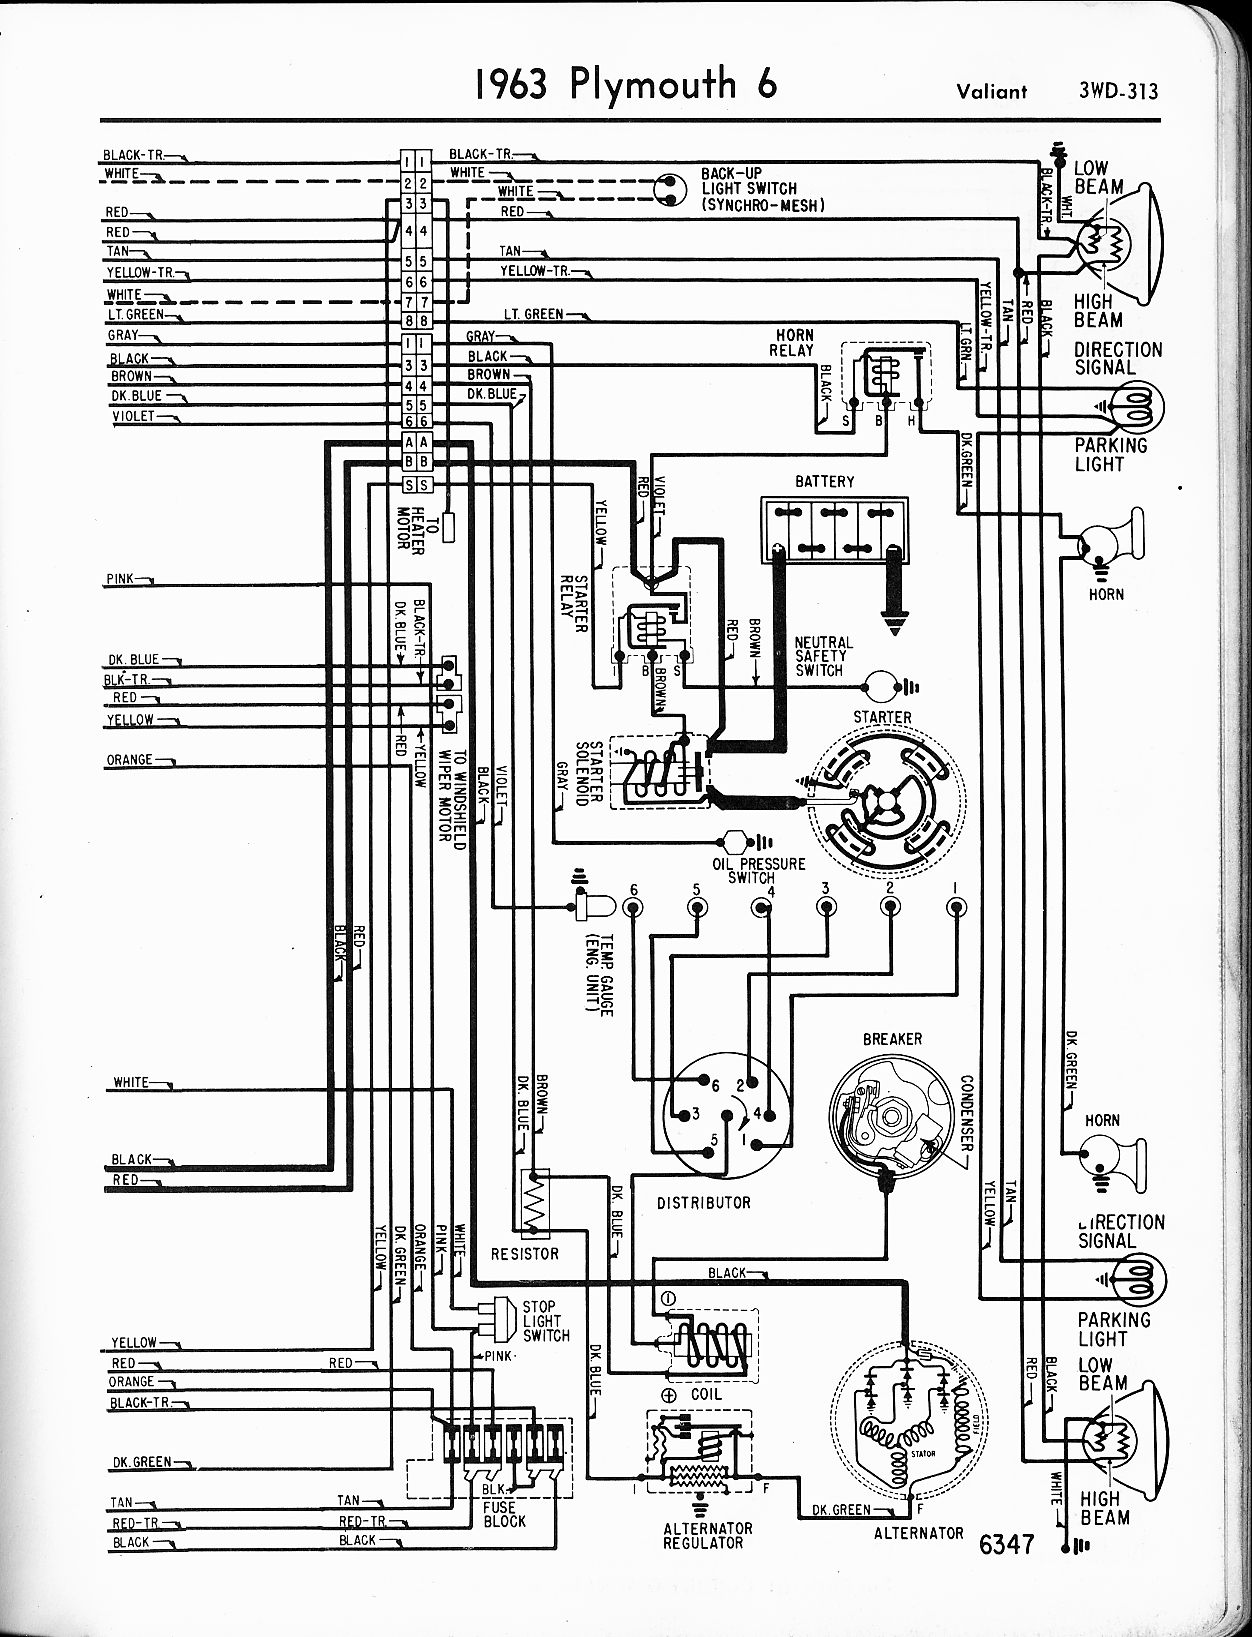 MWire5765 313 1956 1965 plymouth wiring the old car manual project 64 valiant wiring diagram at bayanpartner.co